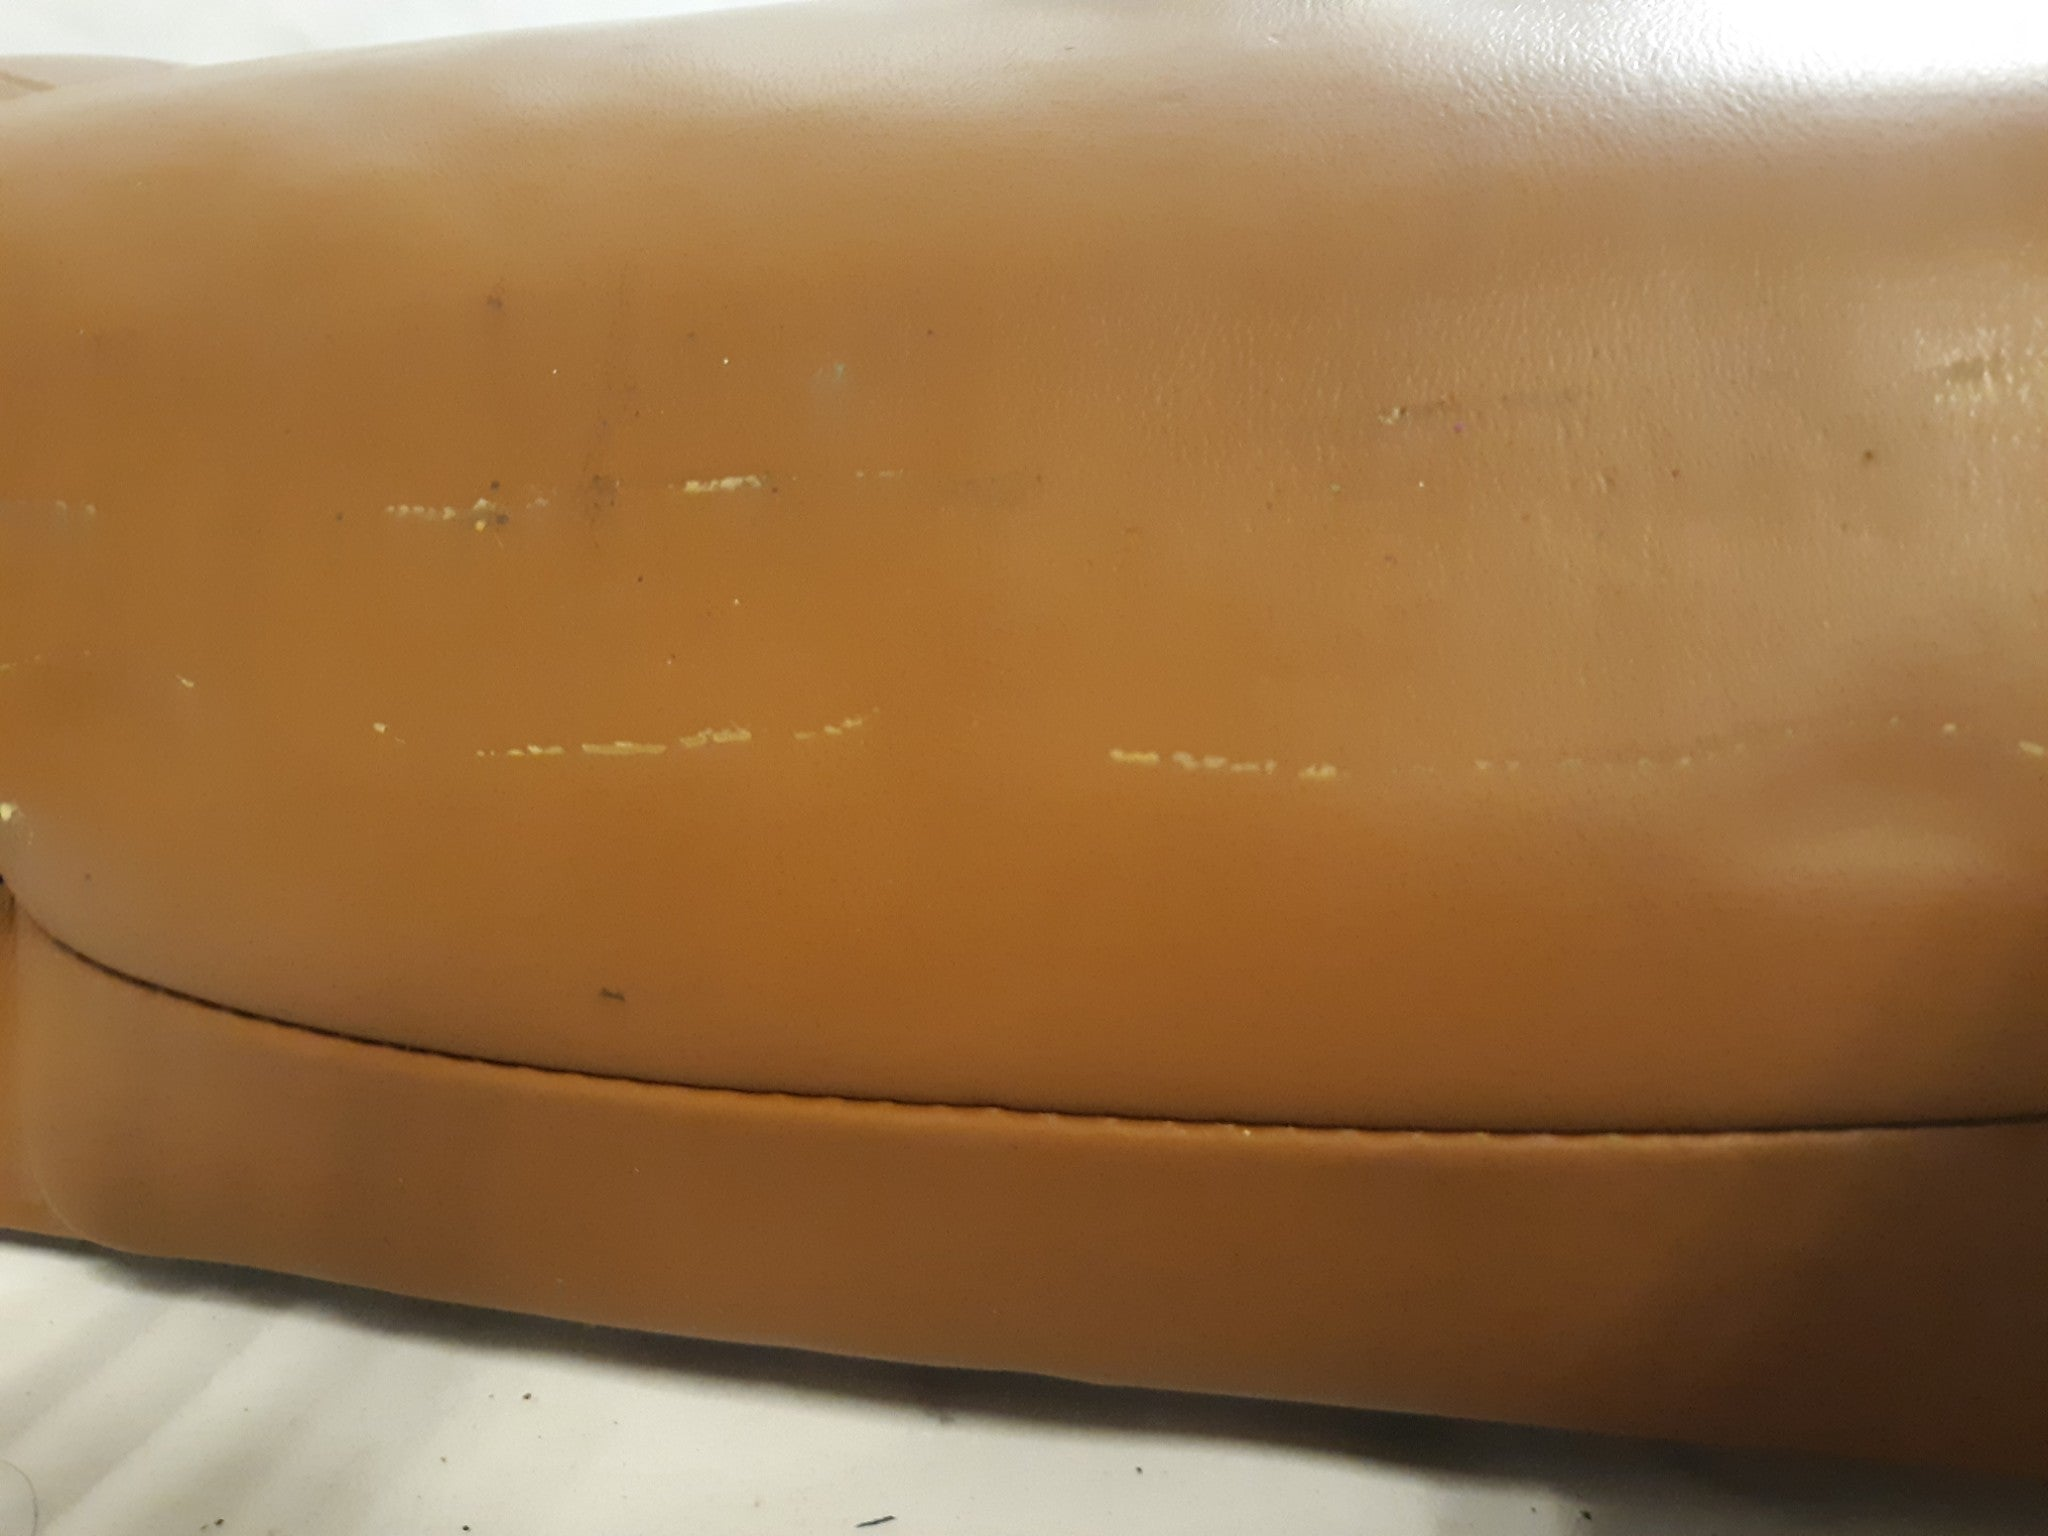 VOLKSWAGEN VW TOUAREG LEFT DRIVER REAR UPPER SEAT CUSHION TAN 2004 2005 2007 OEM